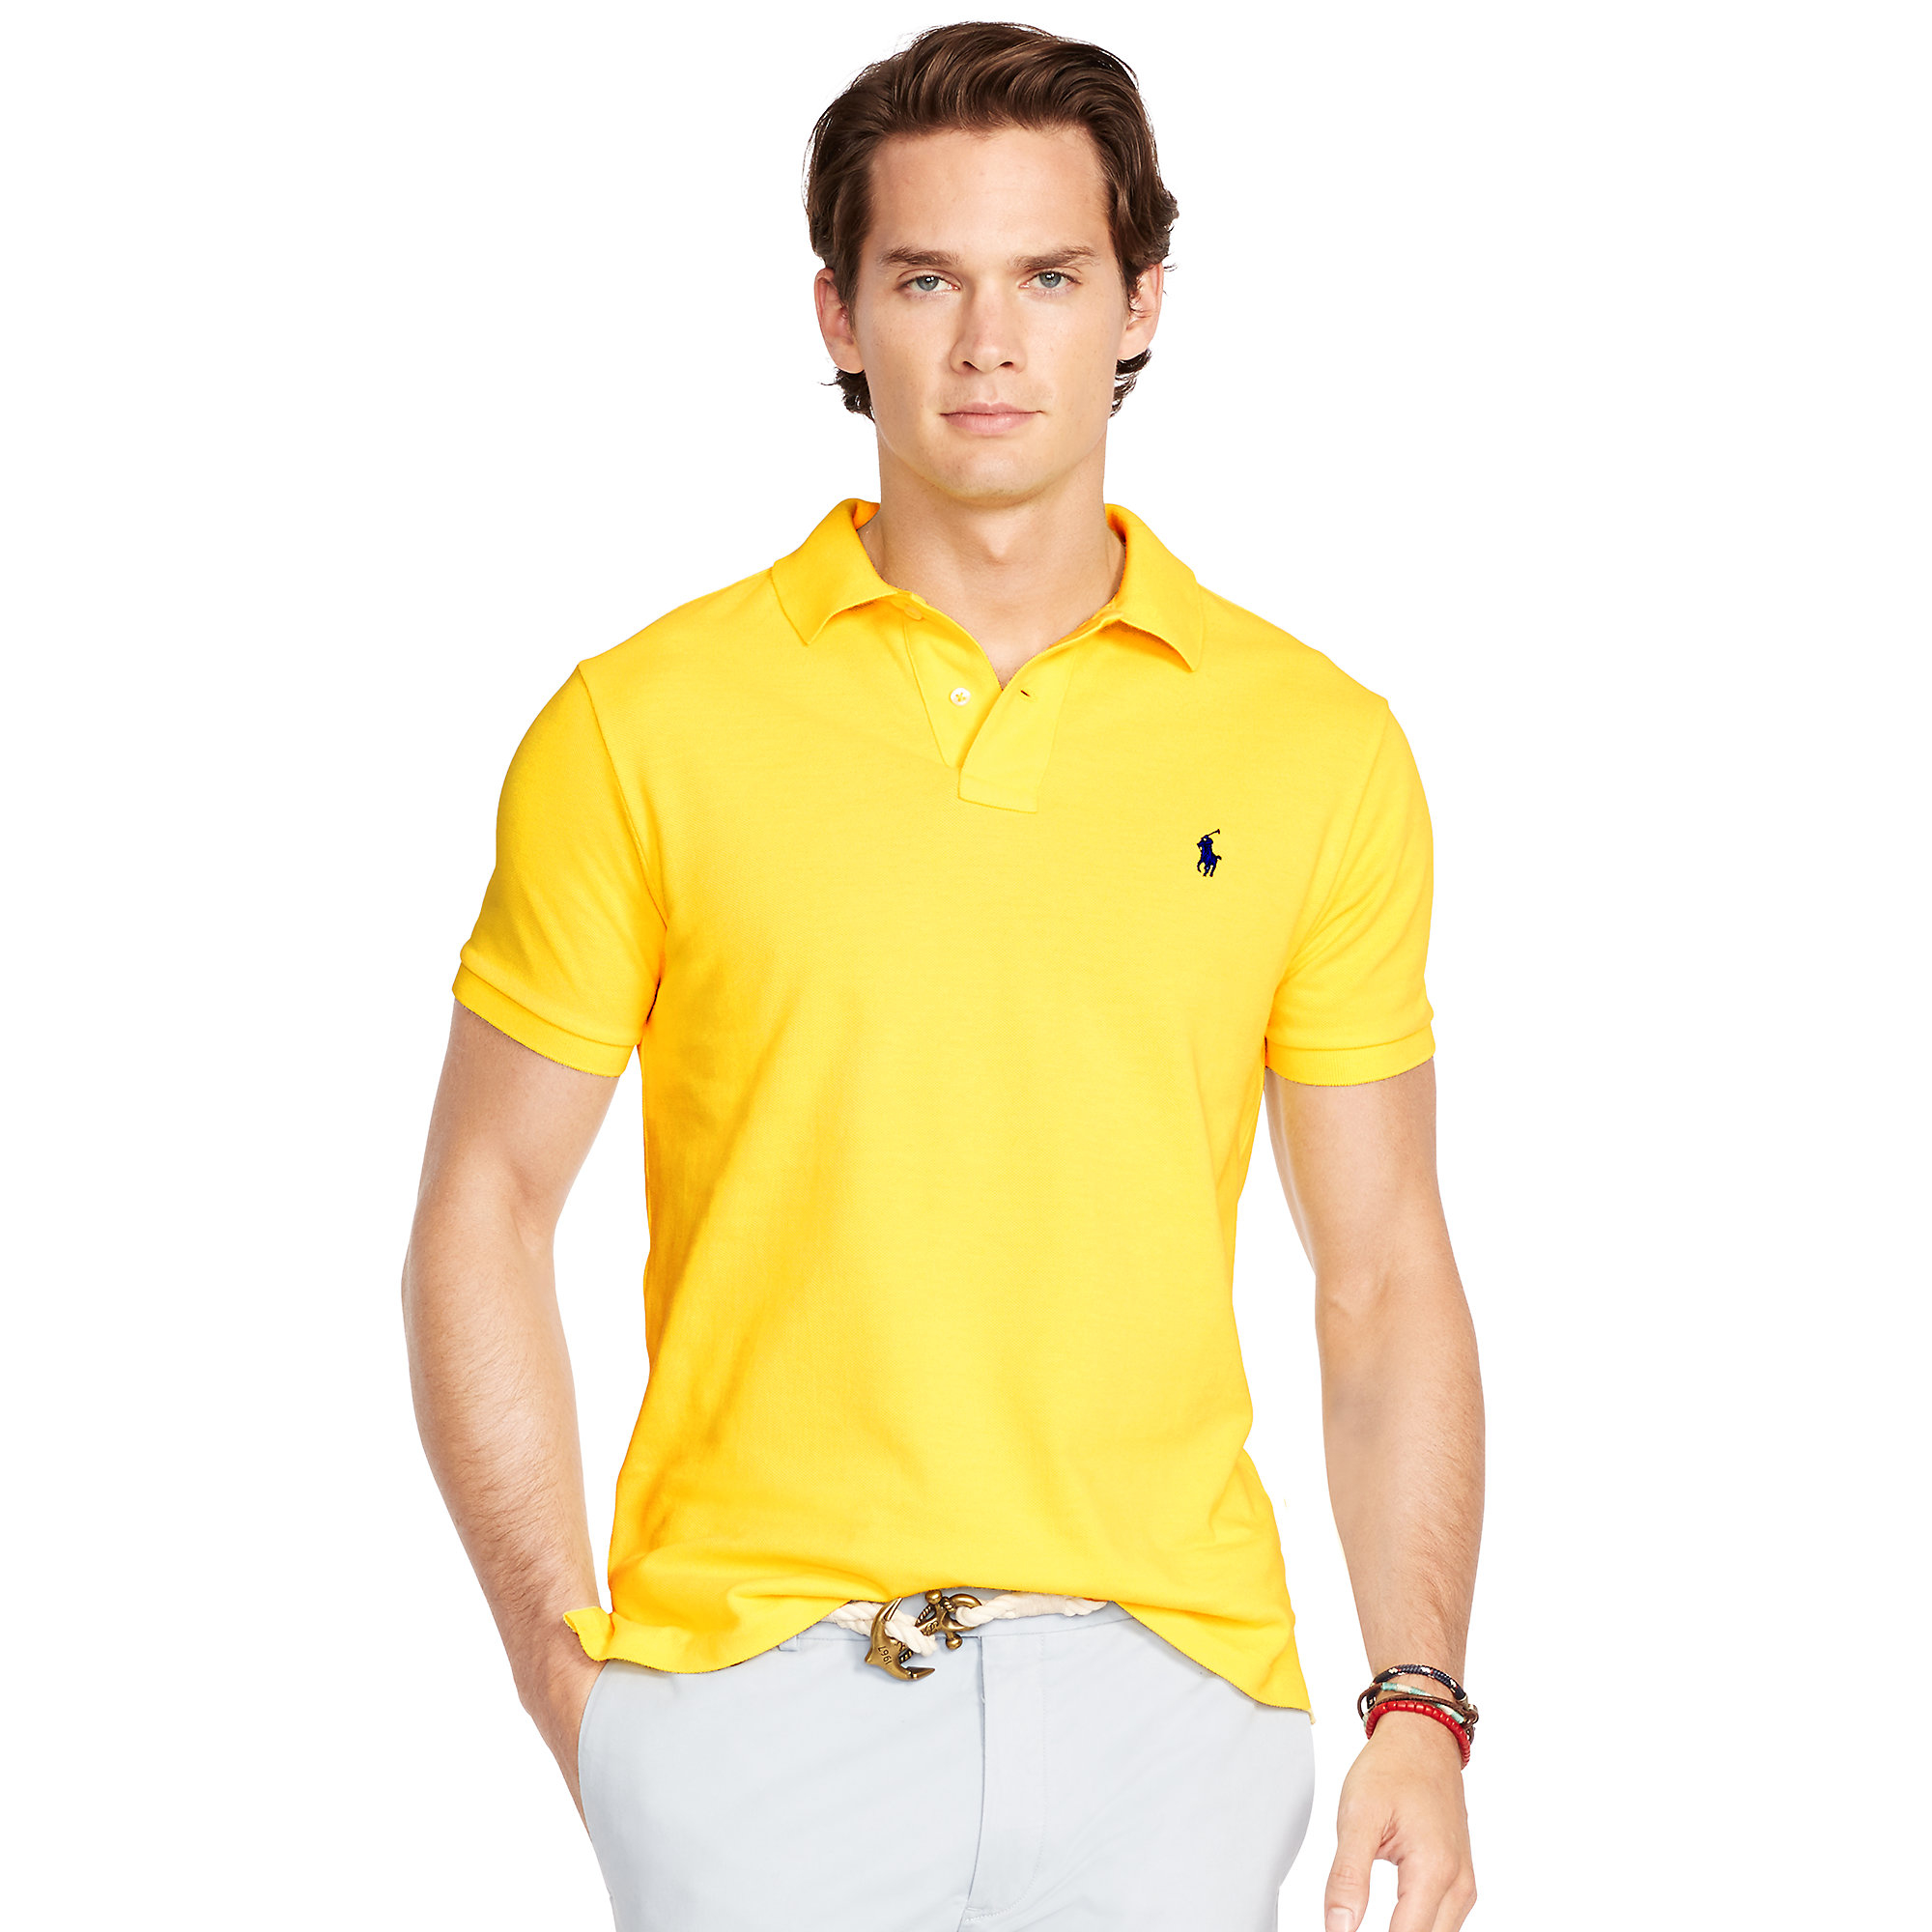 9f53afc30 Polo Ralph Lauren Slim-fit Mesh Polo Shirt in Yellow for Men - Lyst